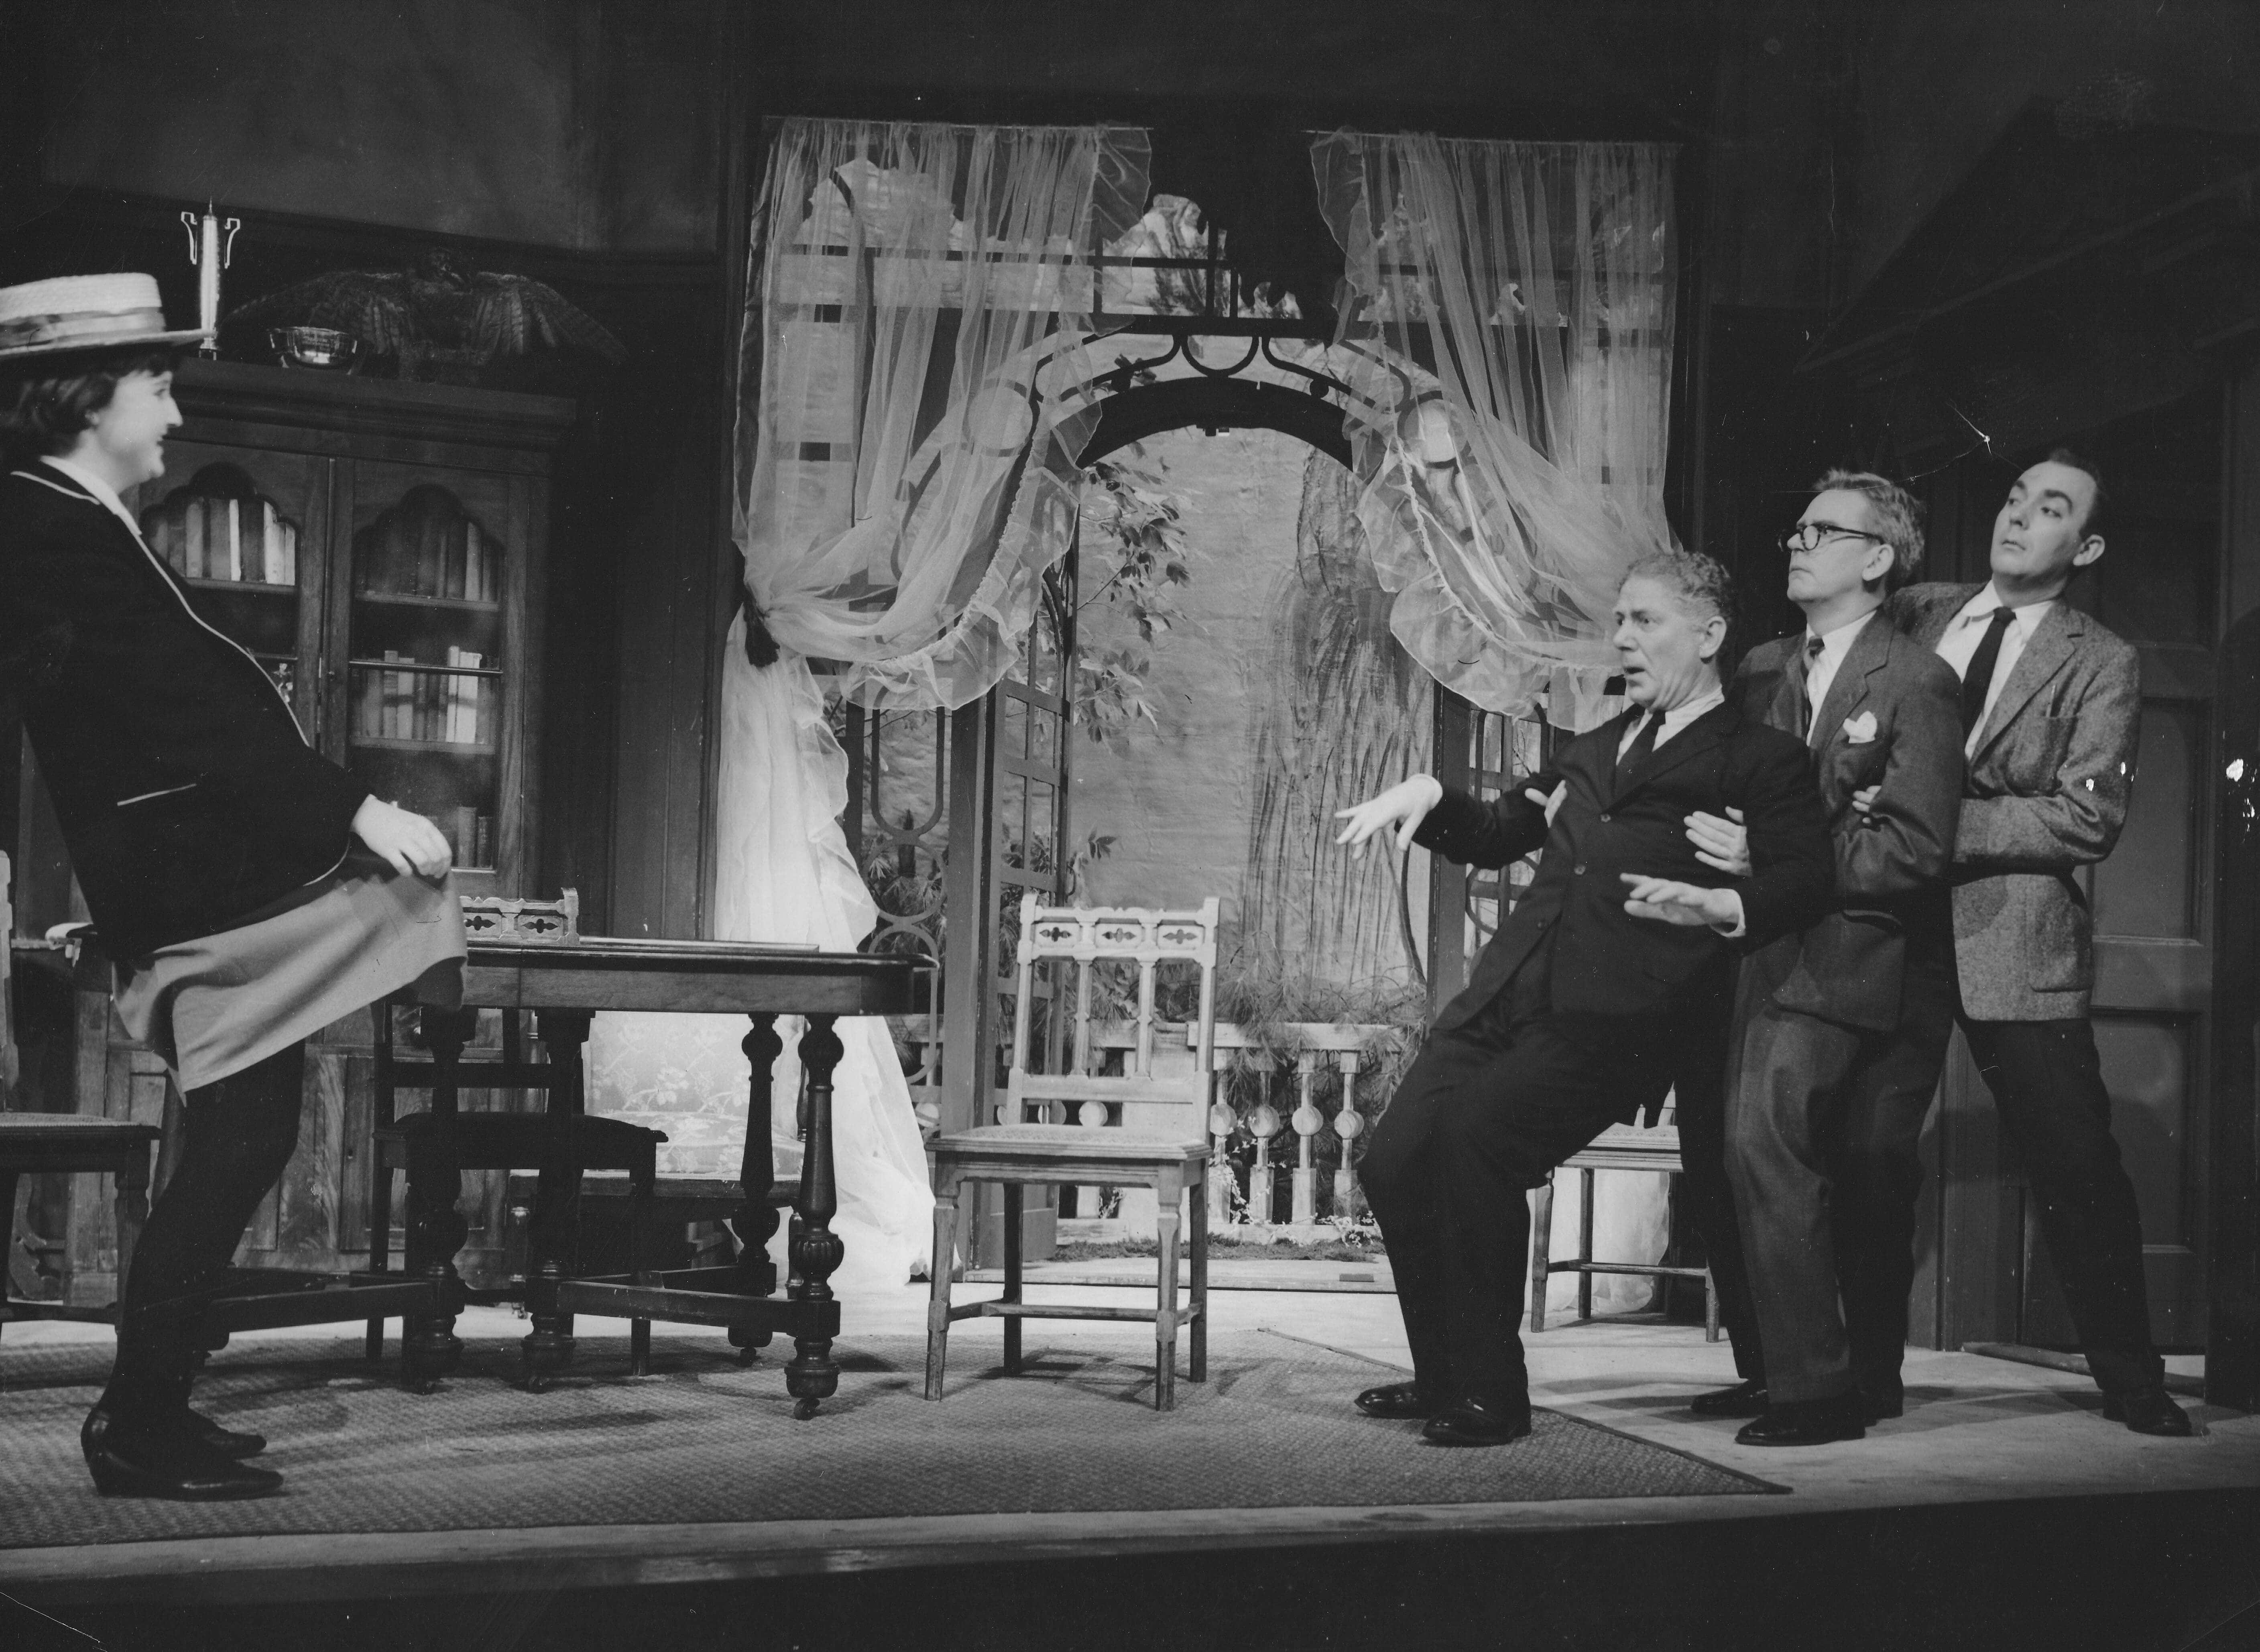 Judy White, Paul Ballantyne, David Vaughan, and George Vogel in The Happiest Days of Your Life at Berkshire Theatre, 1960.